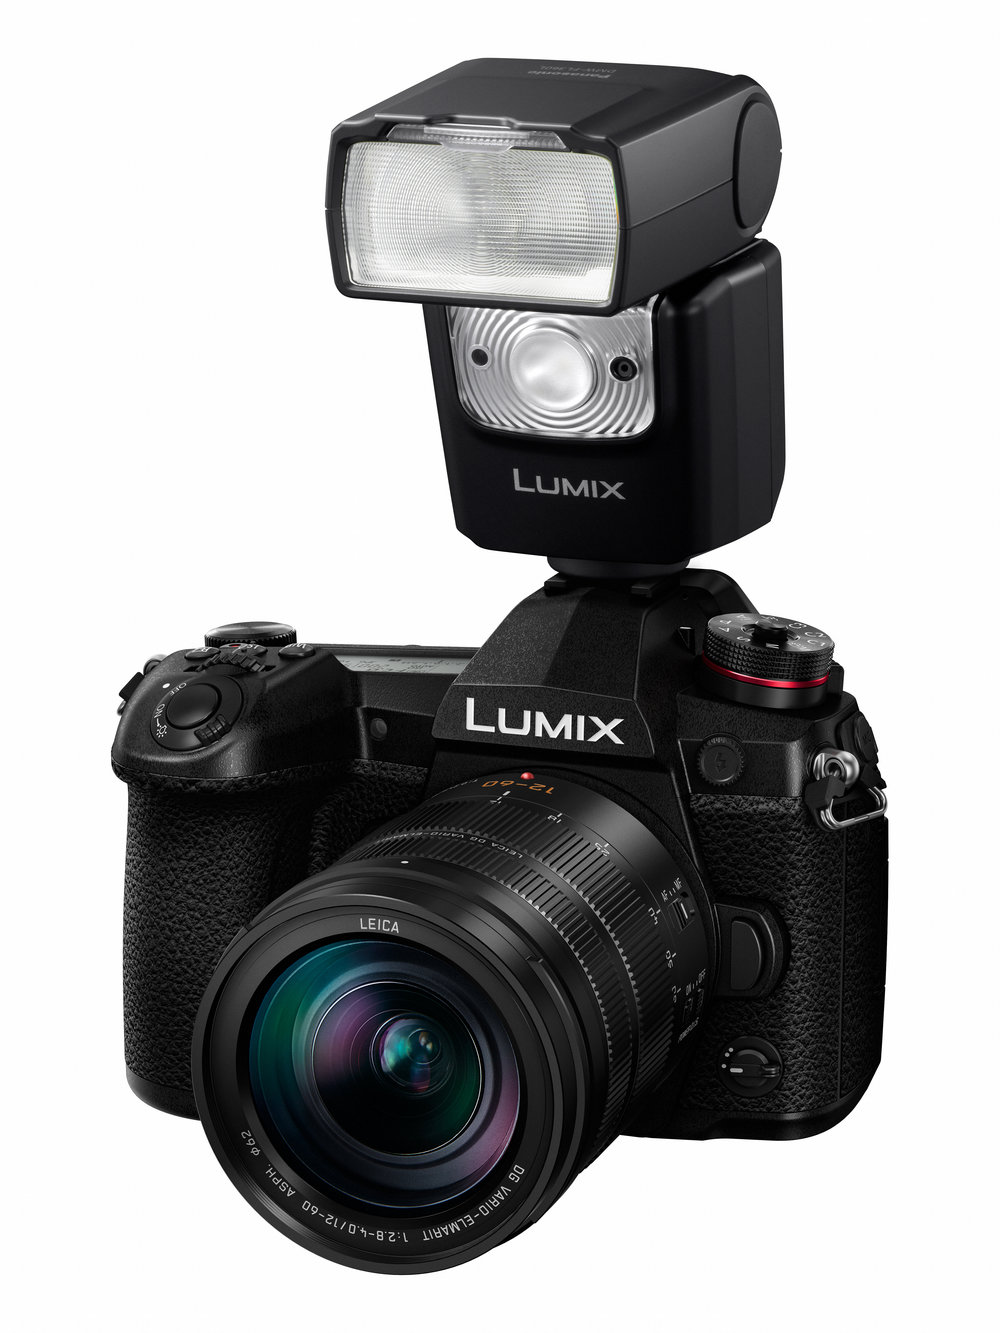 The Lumix G9 is no shrinking violet. It is a great camera and certainly one of the best micro four-thirds shooters you can buy. But, let's face it, you can get a full-frame mirrorless than is smaller (the Sony A7III to name but one). The G9 has the advantage over full-frame when it comes to lens architecture, but even here we have seen feature bloat over the years